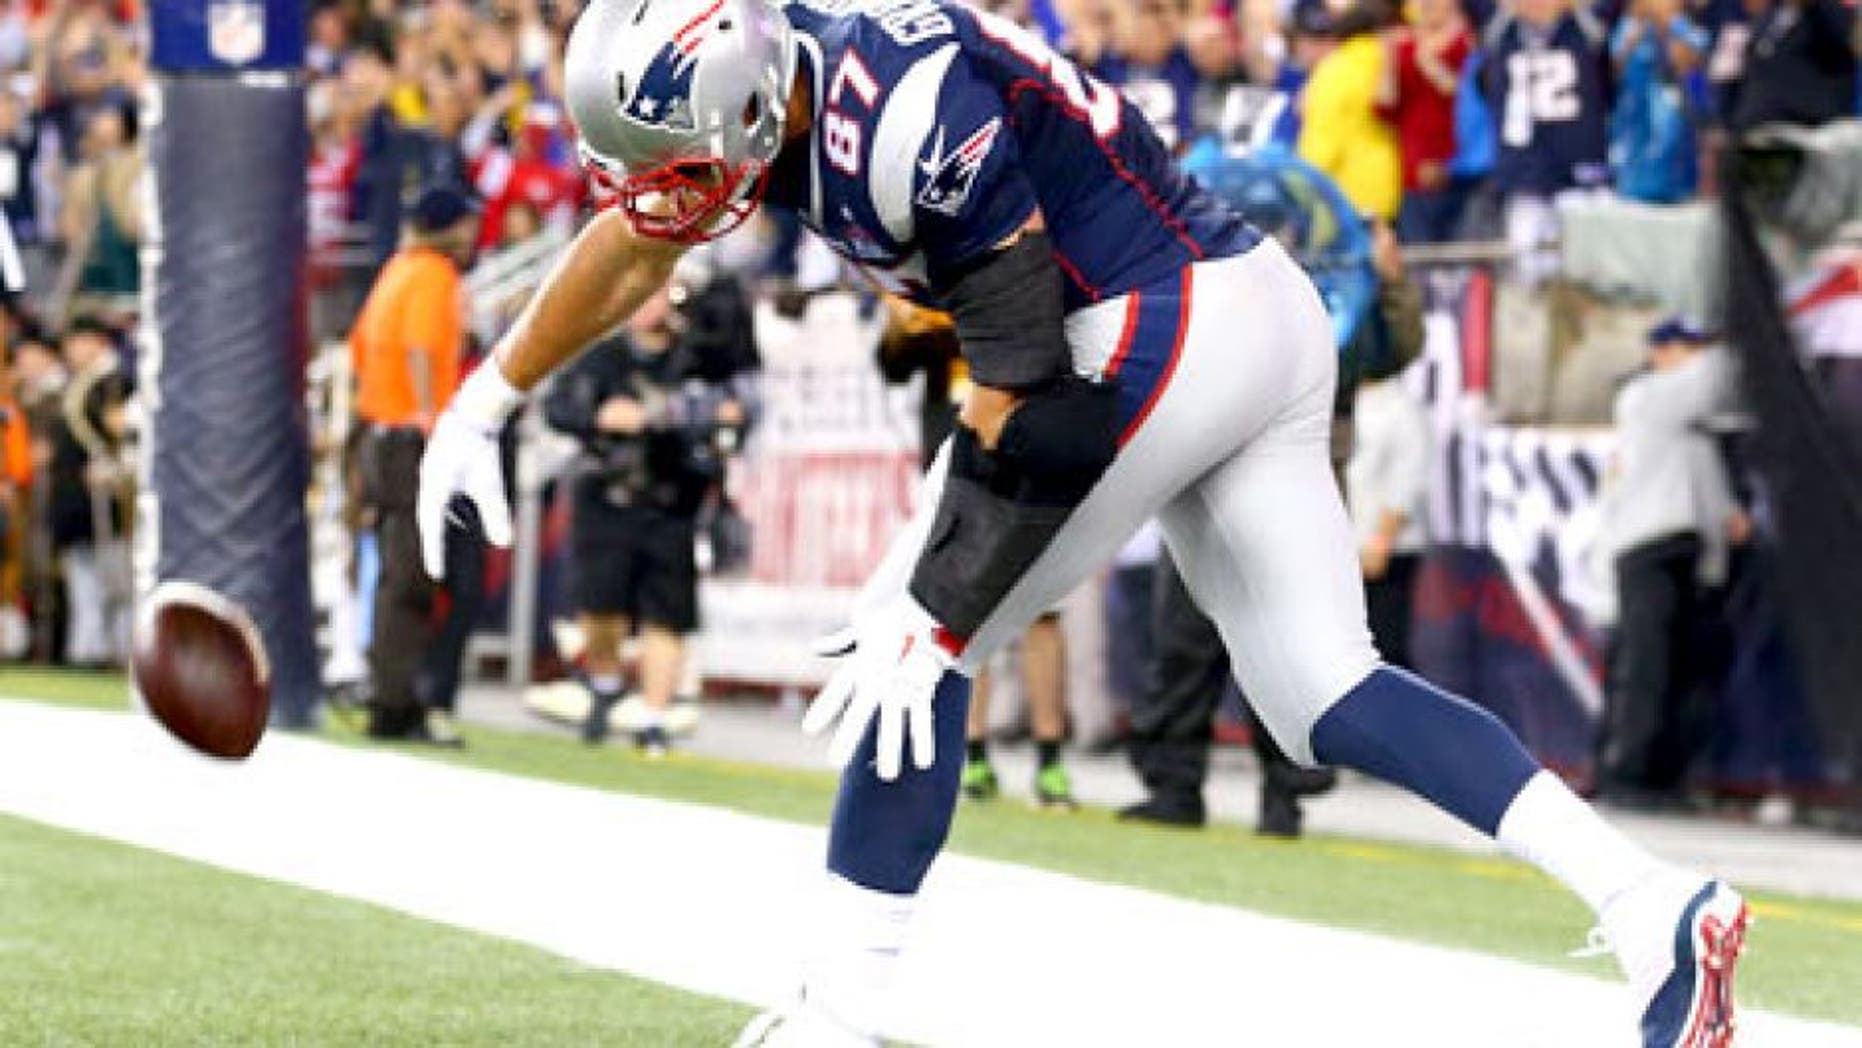 FOXBORO, MA - SEPTEMBER 10: Rob Gronkowski #87 of the New England Patriots spikes the ball to celebrate his touchdown in the second quarter against the Pittsburgh Steelers at Gillette Stadium on September 10, 2015 in Foxboro, Massachusetts. (Photo by Maddie Meyer/Getty Images)